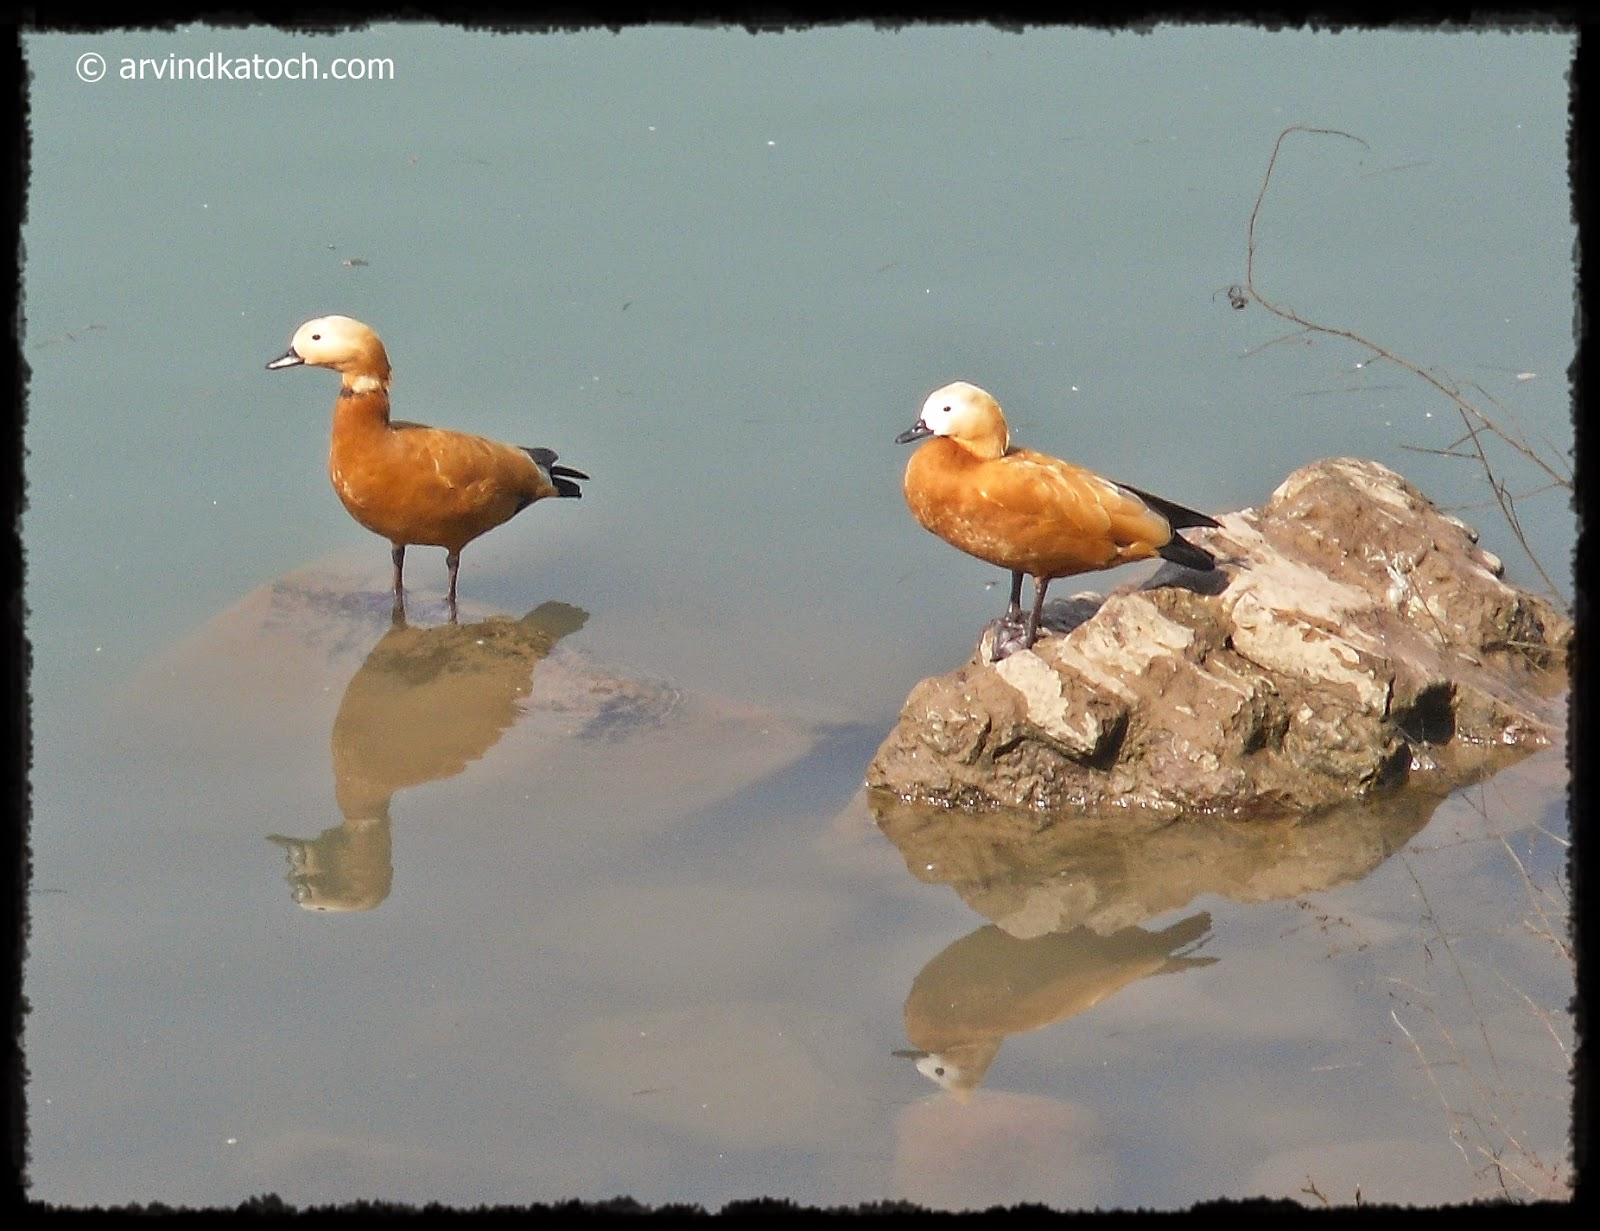 Ruddy Shelduck, Shelduck, Duck, Water bird